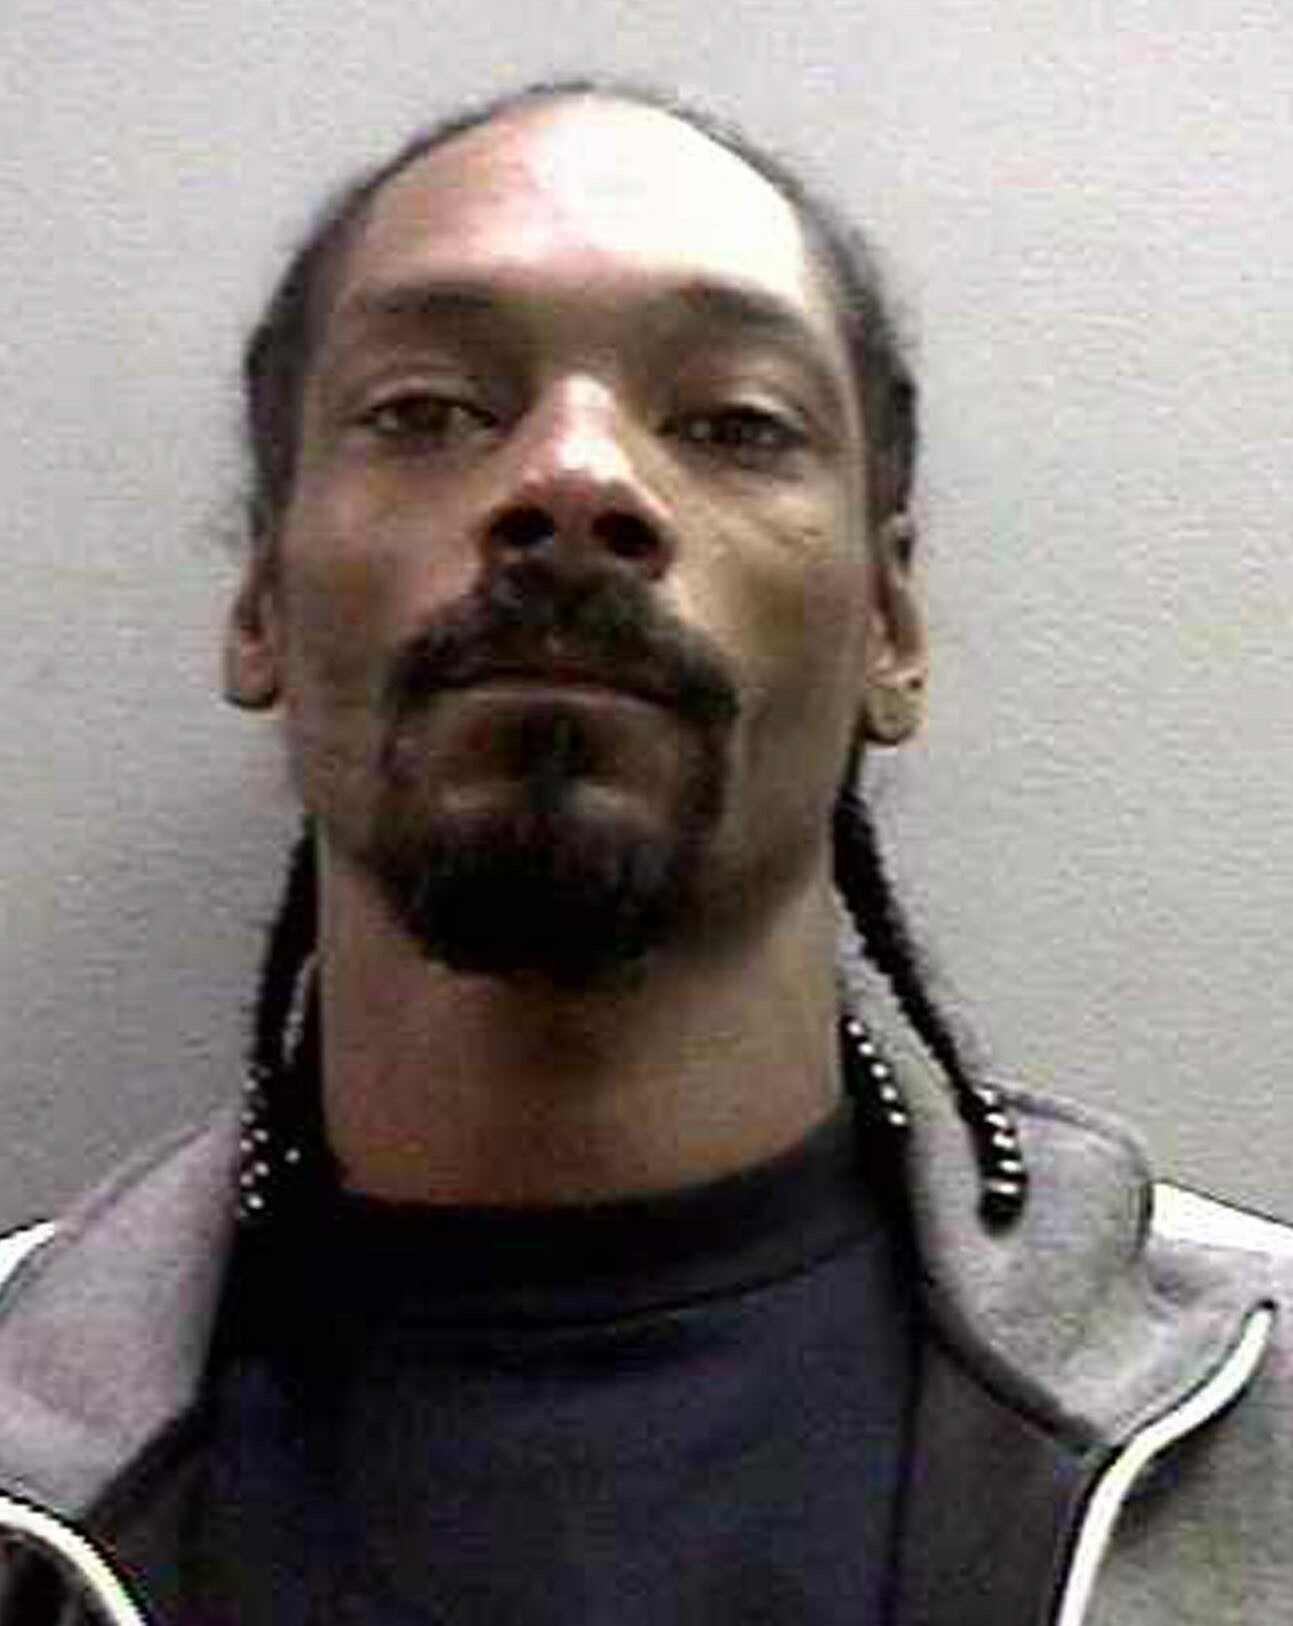 Snoop Dogg served time off and on in the '90s